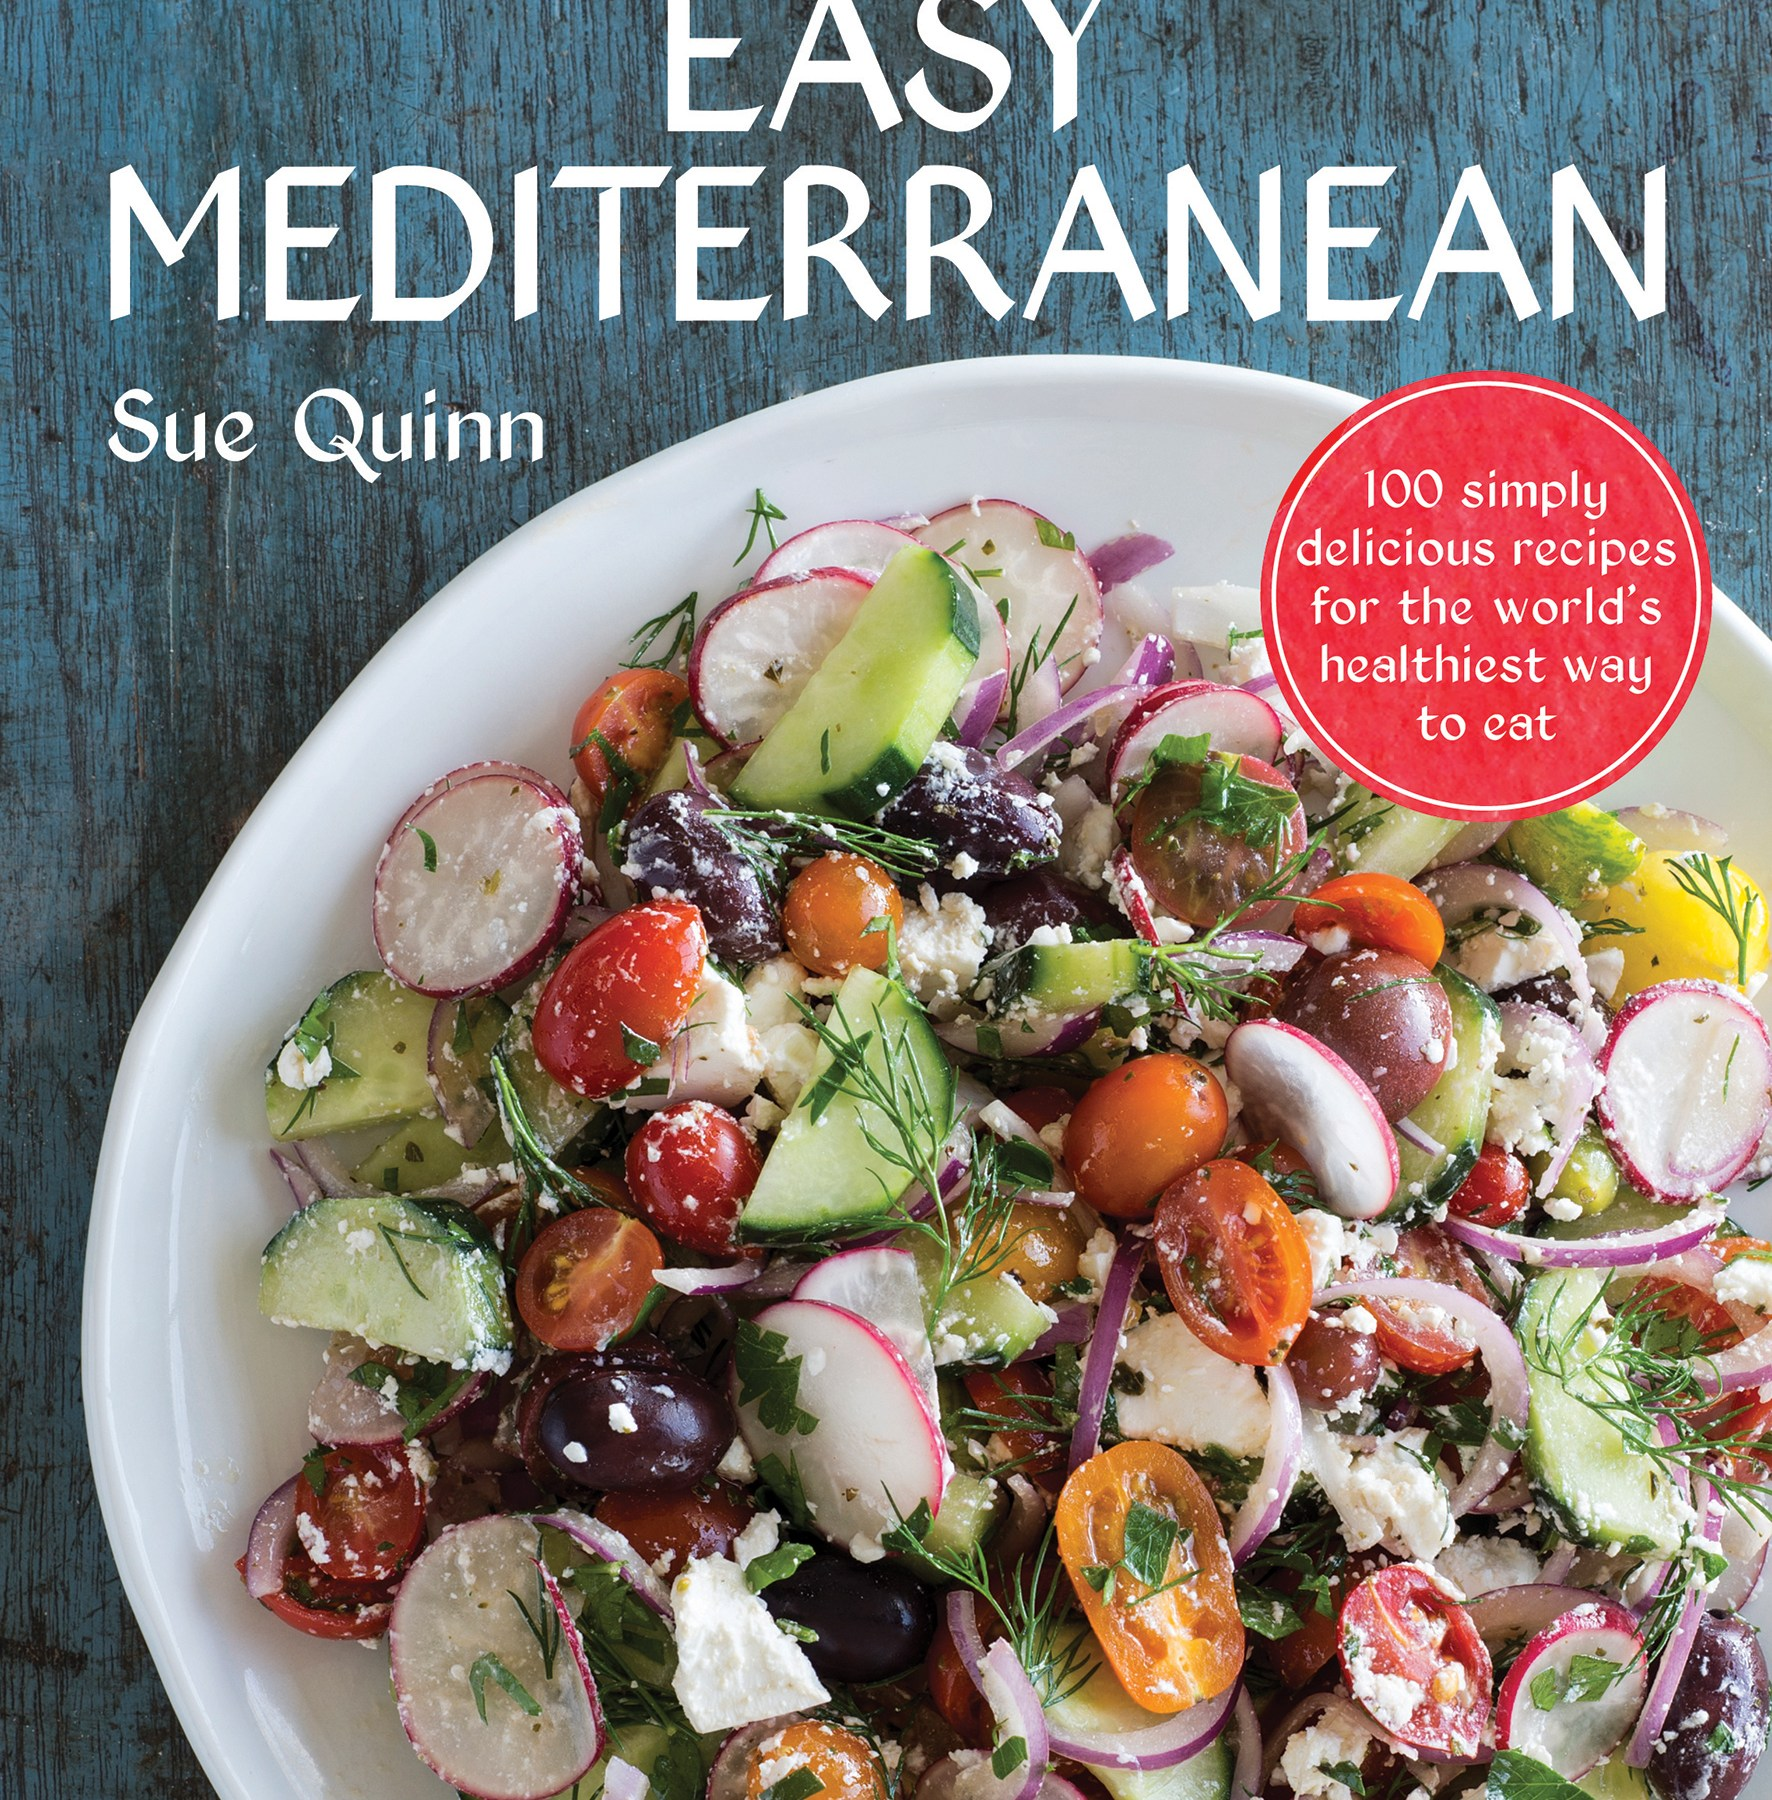 Easy Mediterranean healthy cookbook